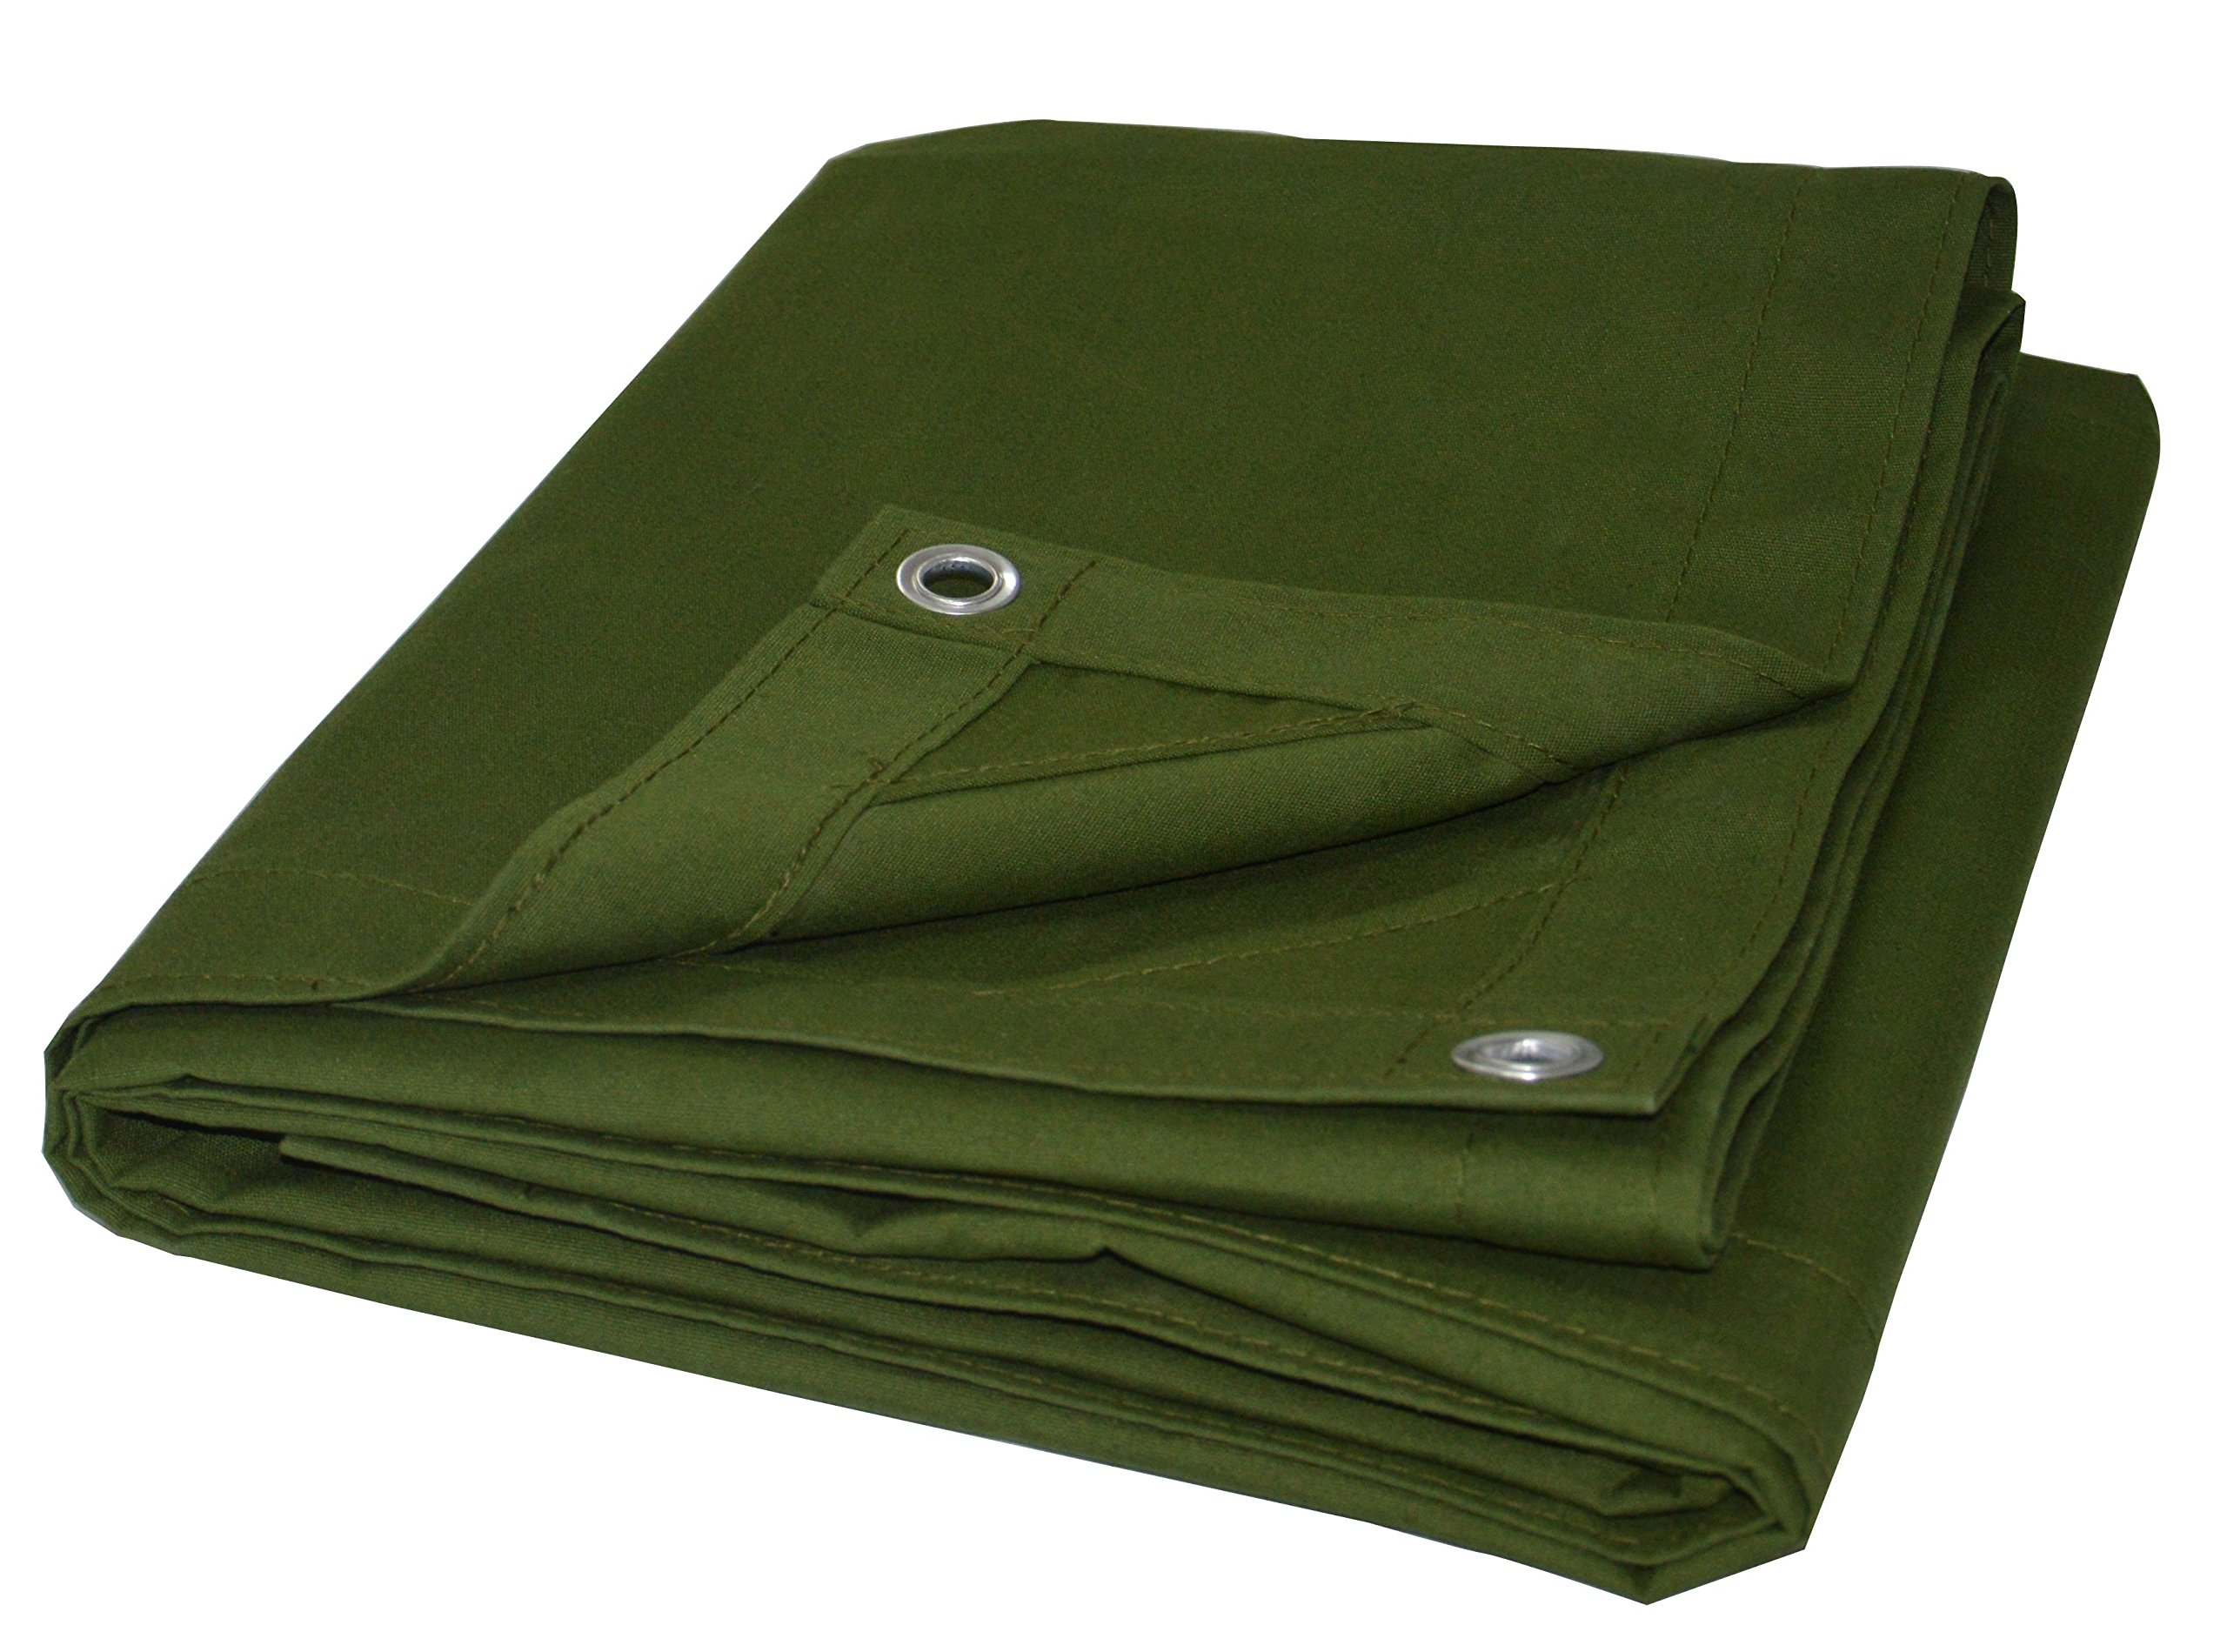 Mold Water and Mildew Resistant 10x12 10x12 18oz Heavy Duty Canvas Tarp with D-Rings